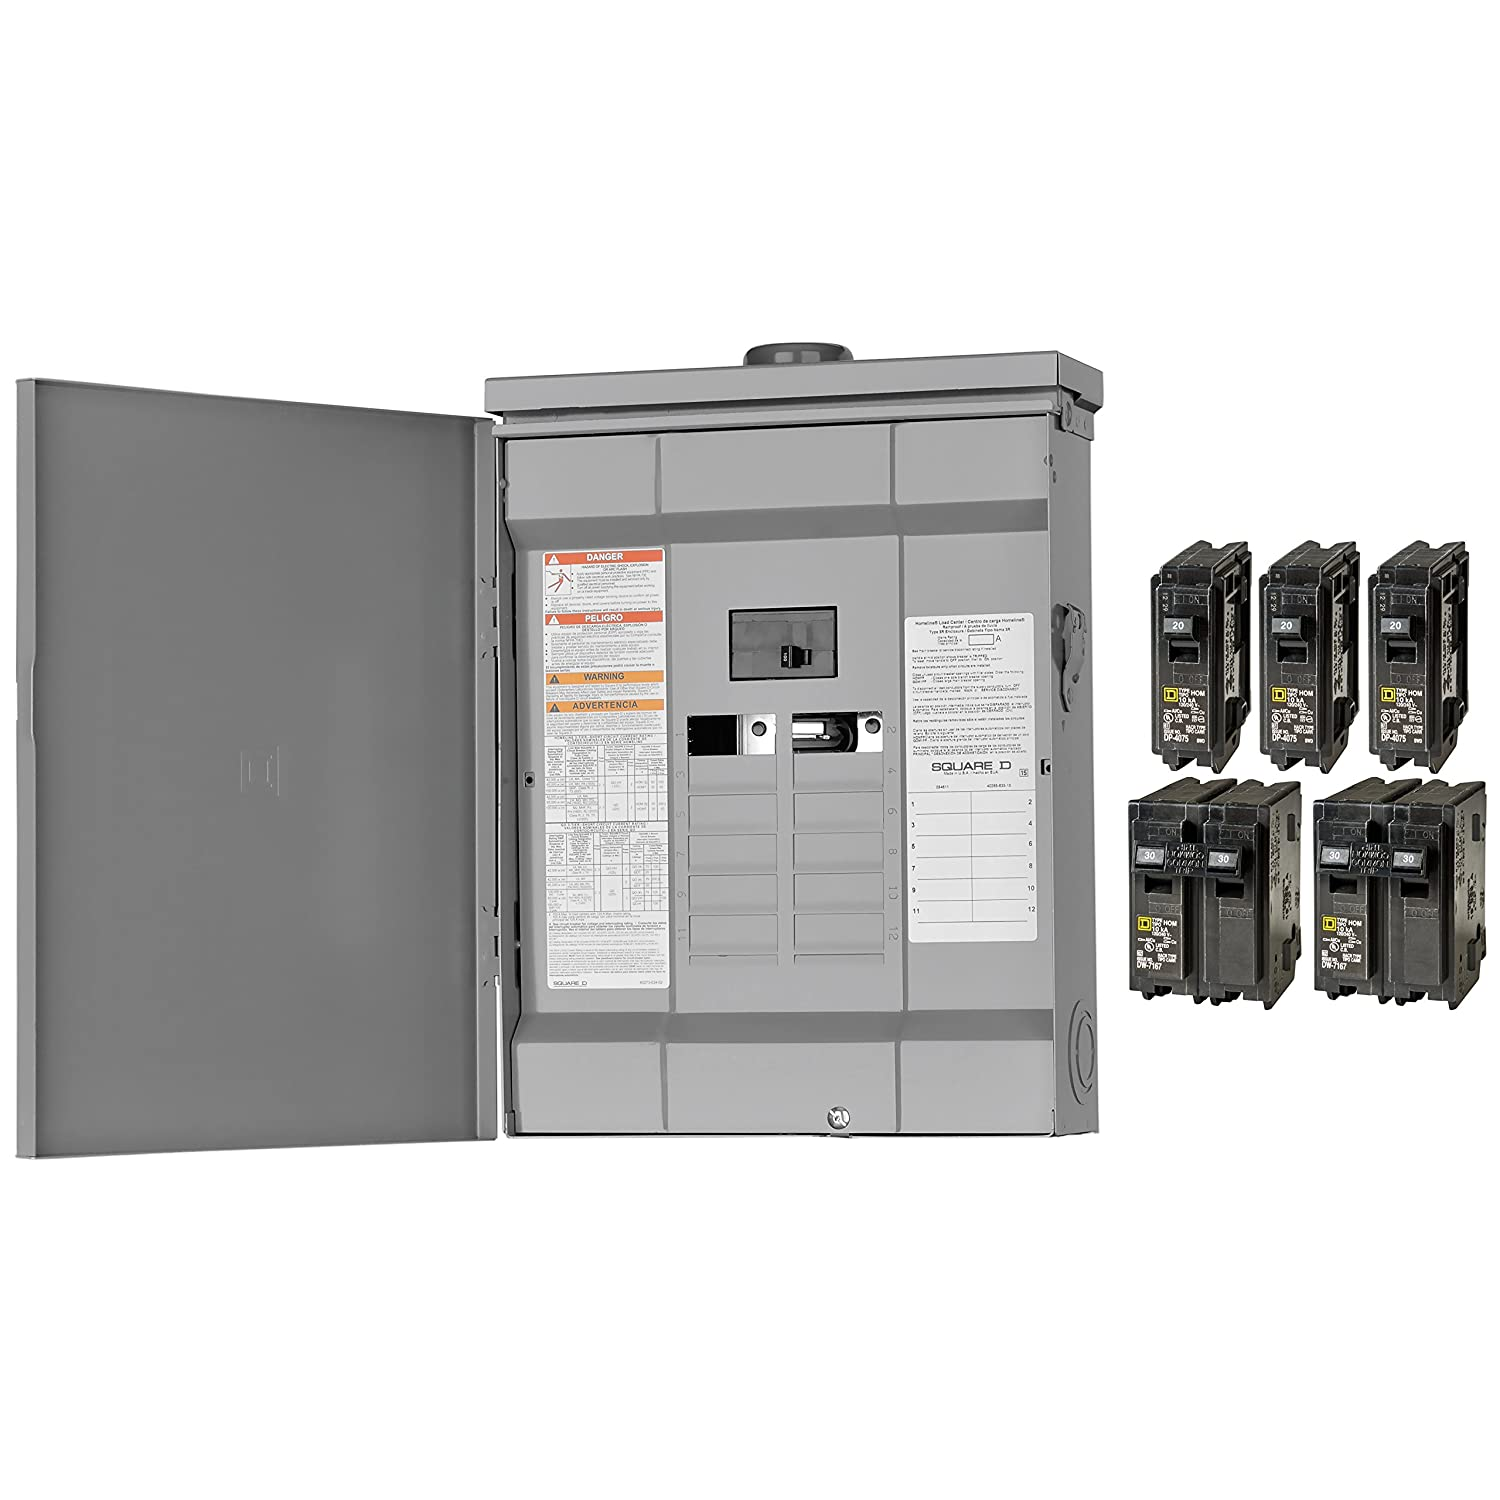 Square D By Schneider Electric Hom1224m125prbvp Homeline 125 Amp 12 Two Pole 30 Circuit Breaker Hom230cp Space 24 Outdoor Main Load Center Value Pack Plug On Neutral Ready